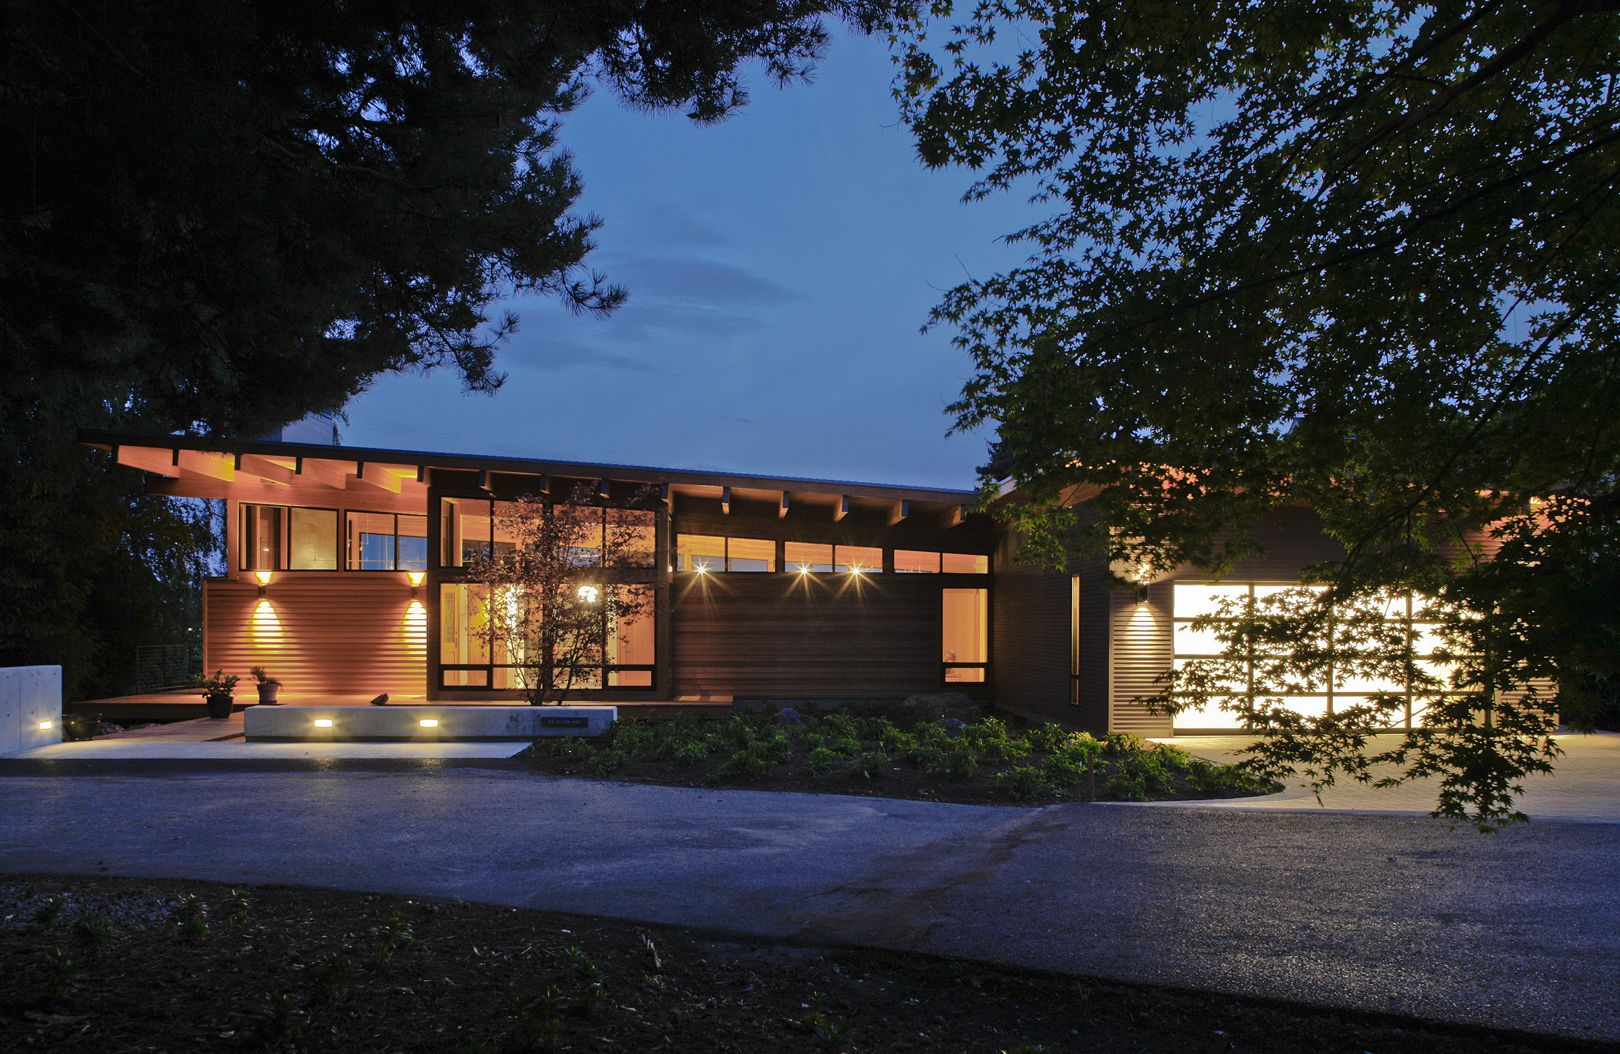 Northwest Modern Home Architecture vancouver airport home - driveway - pacific northwest modern home